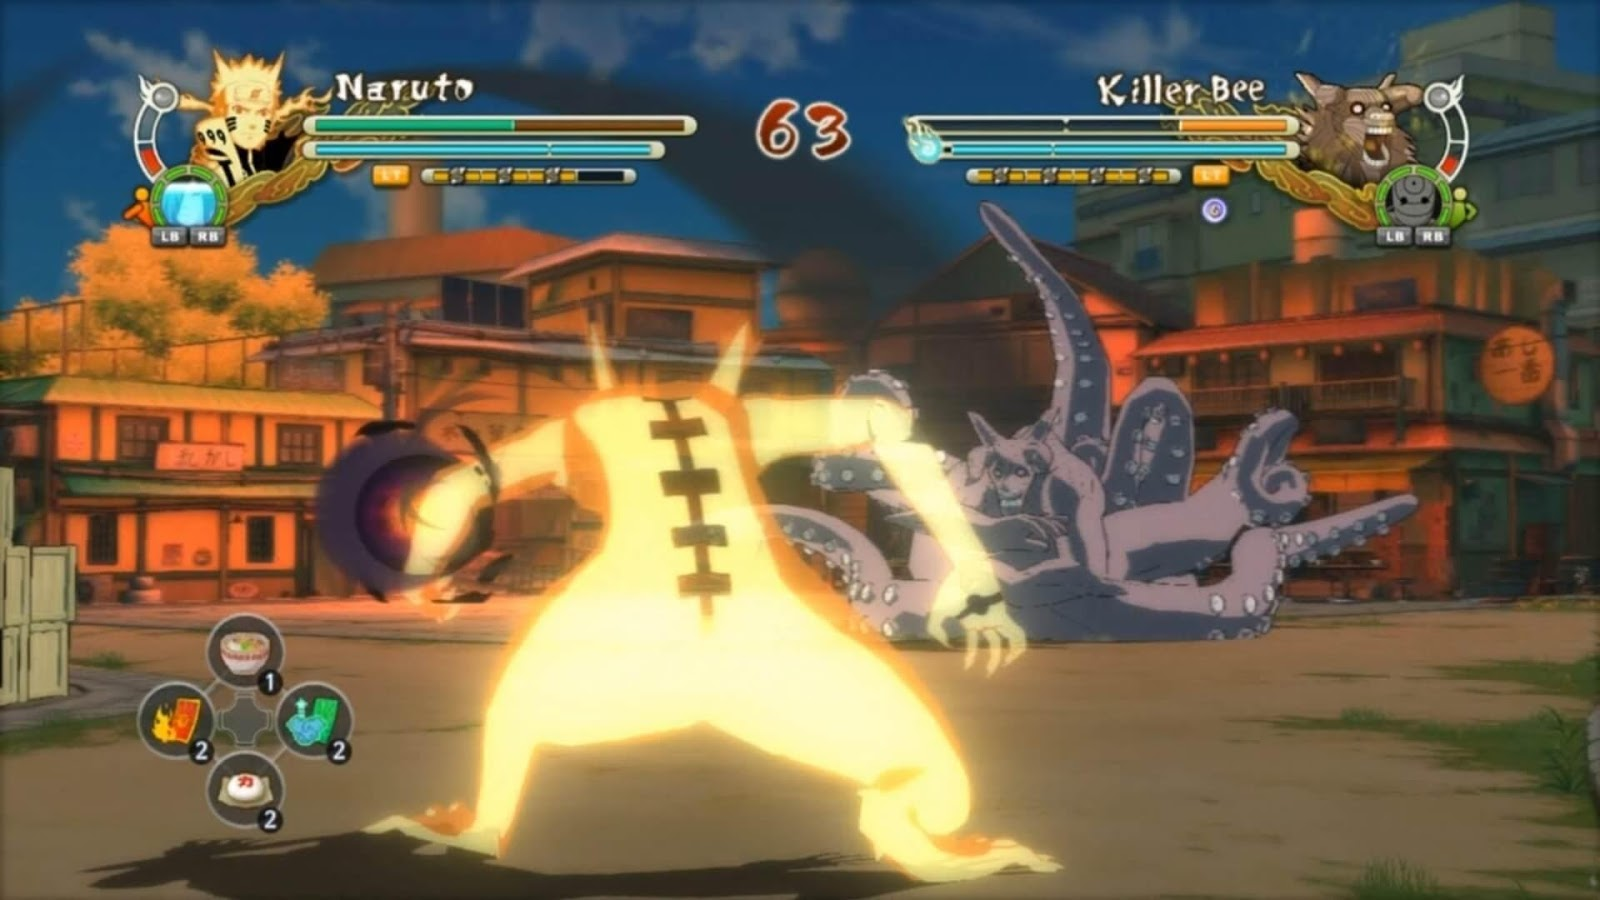 Naruto Shippuden Ninja Storm 3 Full Burst guide 1 0 APK Download